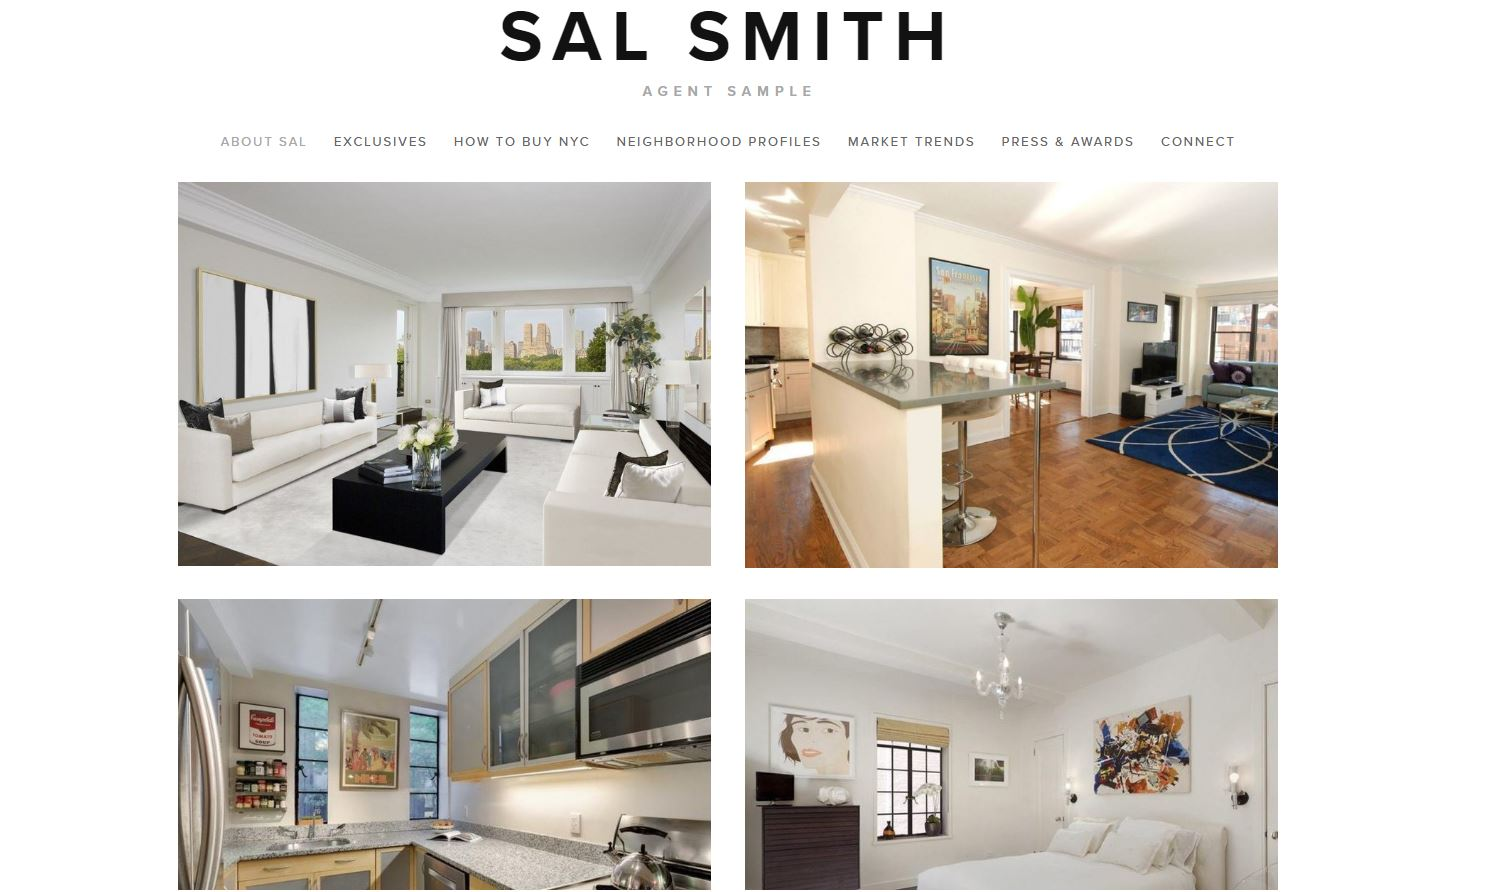 Real estate website focused on exclusive properties. Site features instant update listings, large HD pictures with pop-out, easy share, and save capabilities. Social media push feeds embedded.